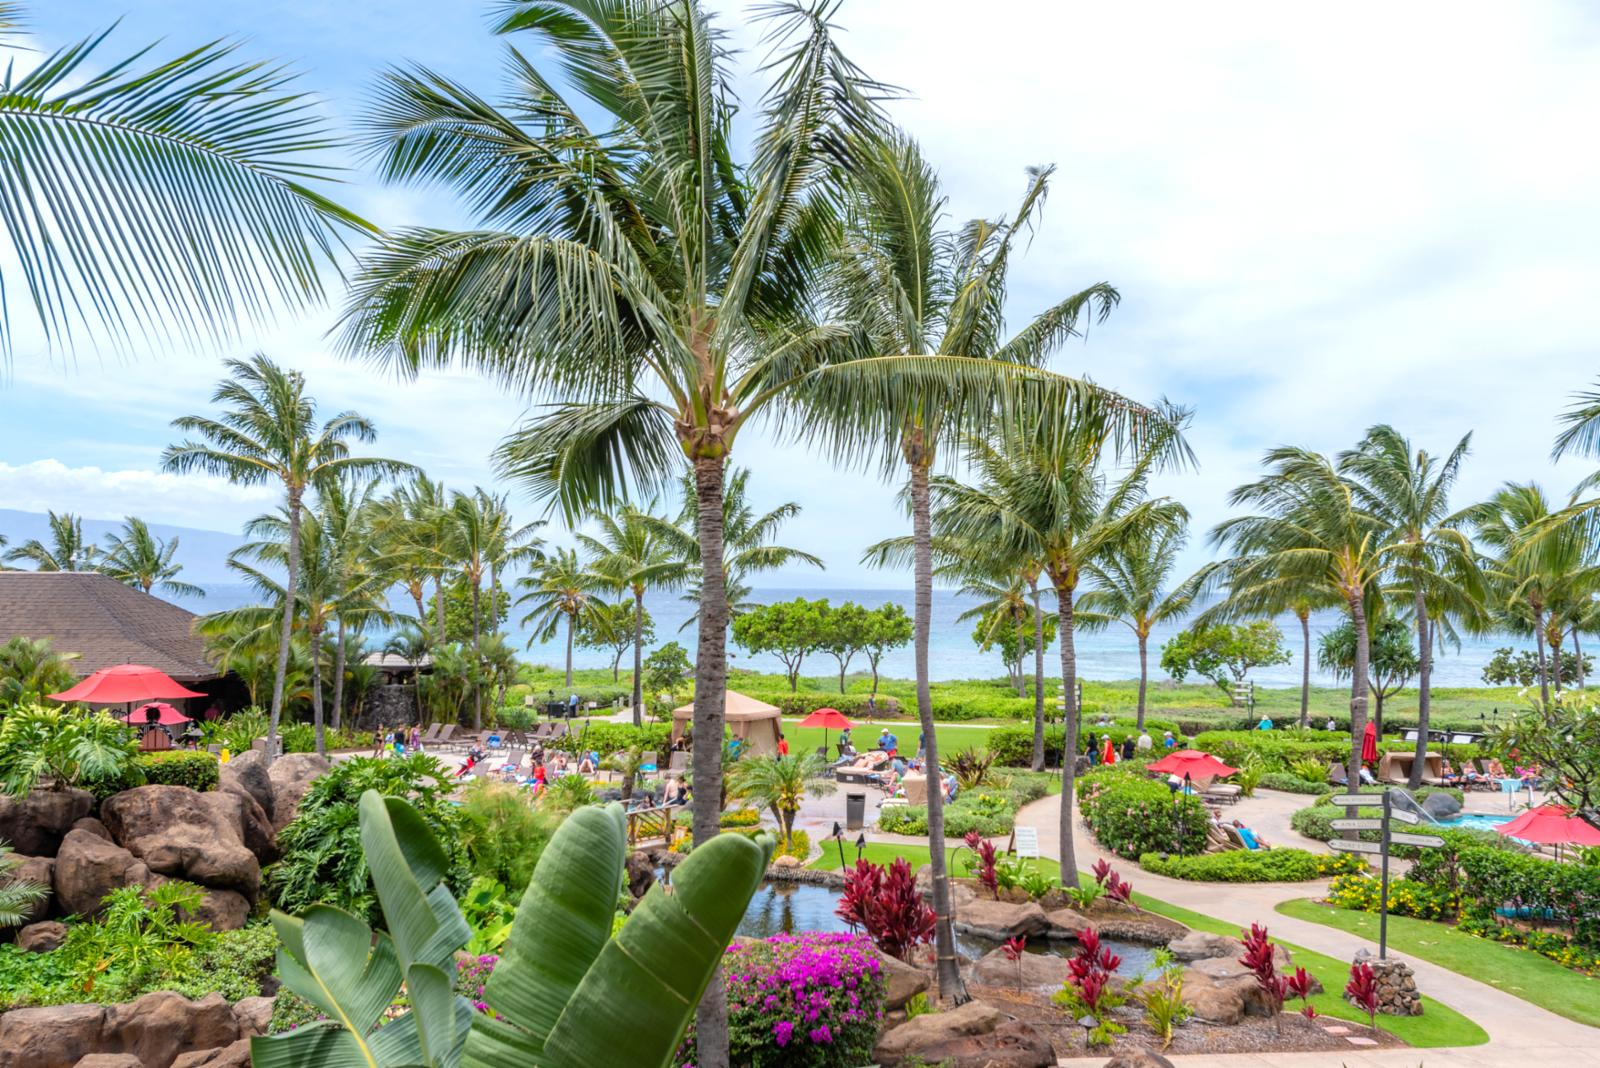 Natural vegetation landscaped throughout the resort